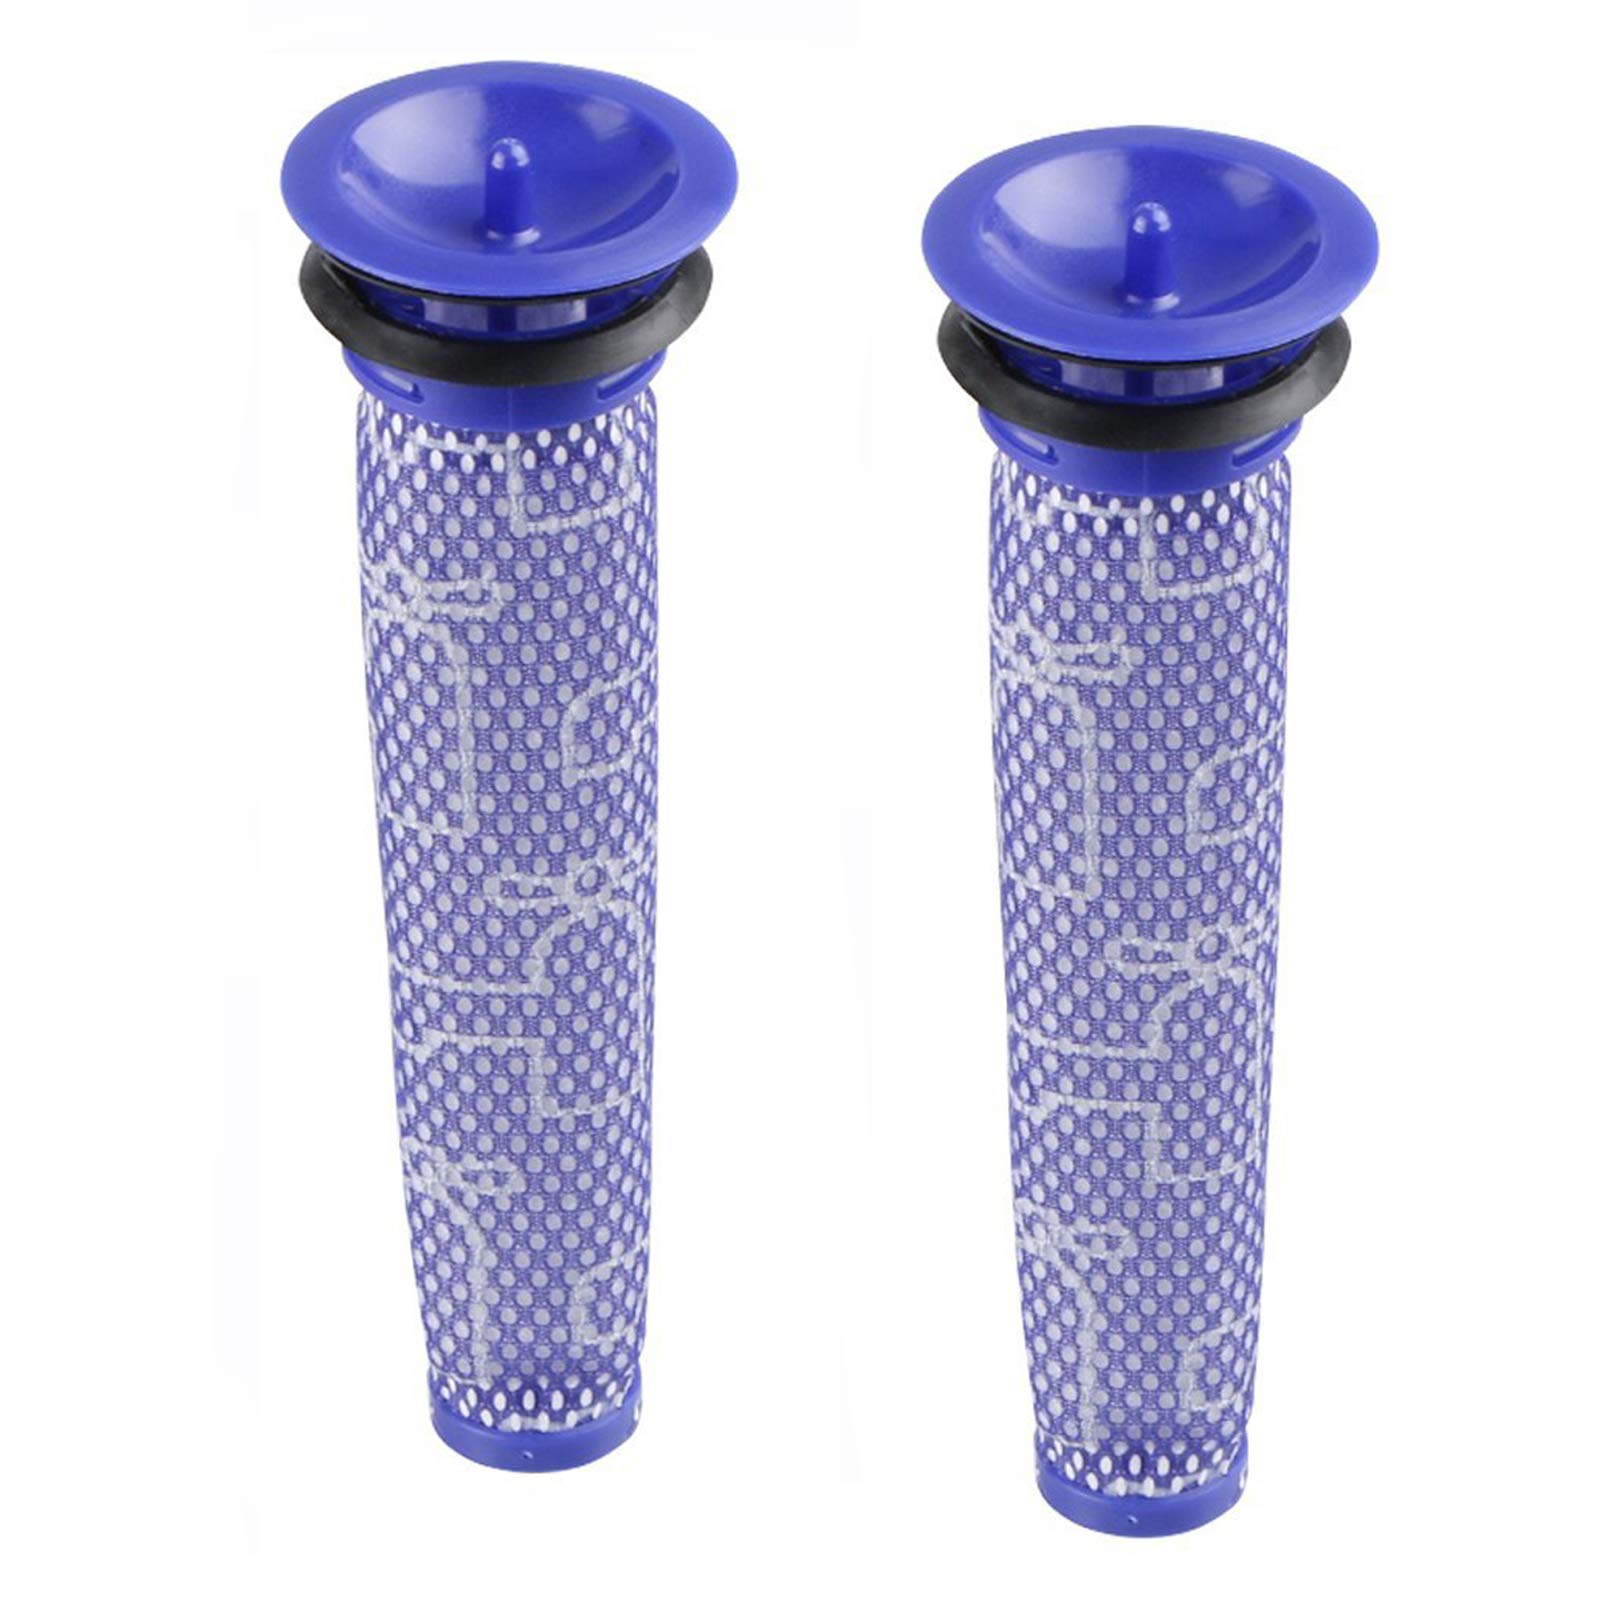 2 Pack Washable Pre Motor Filter for Dyson DC58 DC59 V6 V7 V8 Cordless Vacuum Cleaners ,2 Filters Replacements Part # 965661-01 by Aunifun